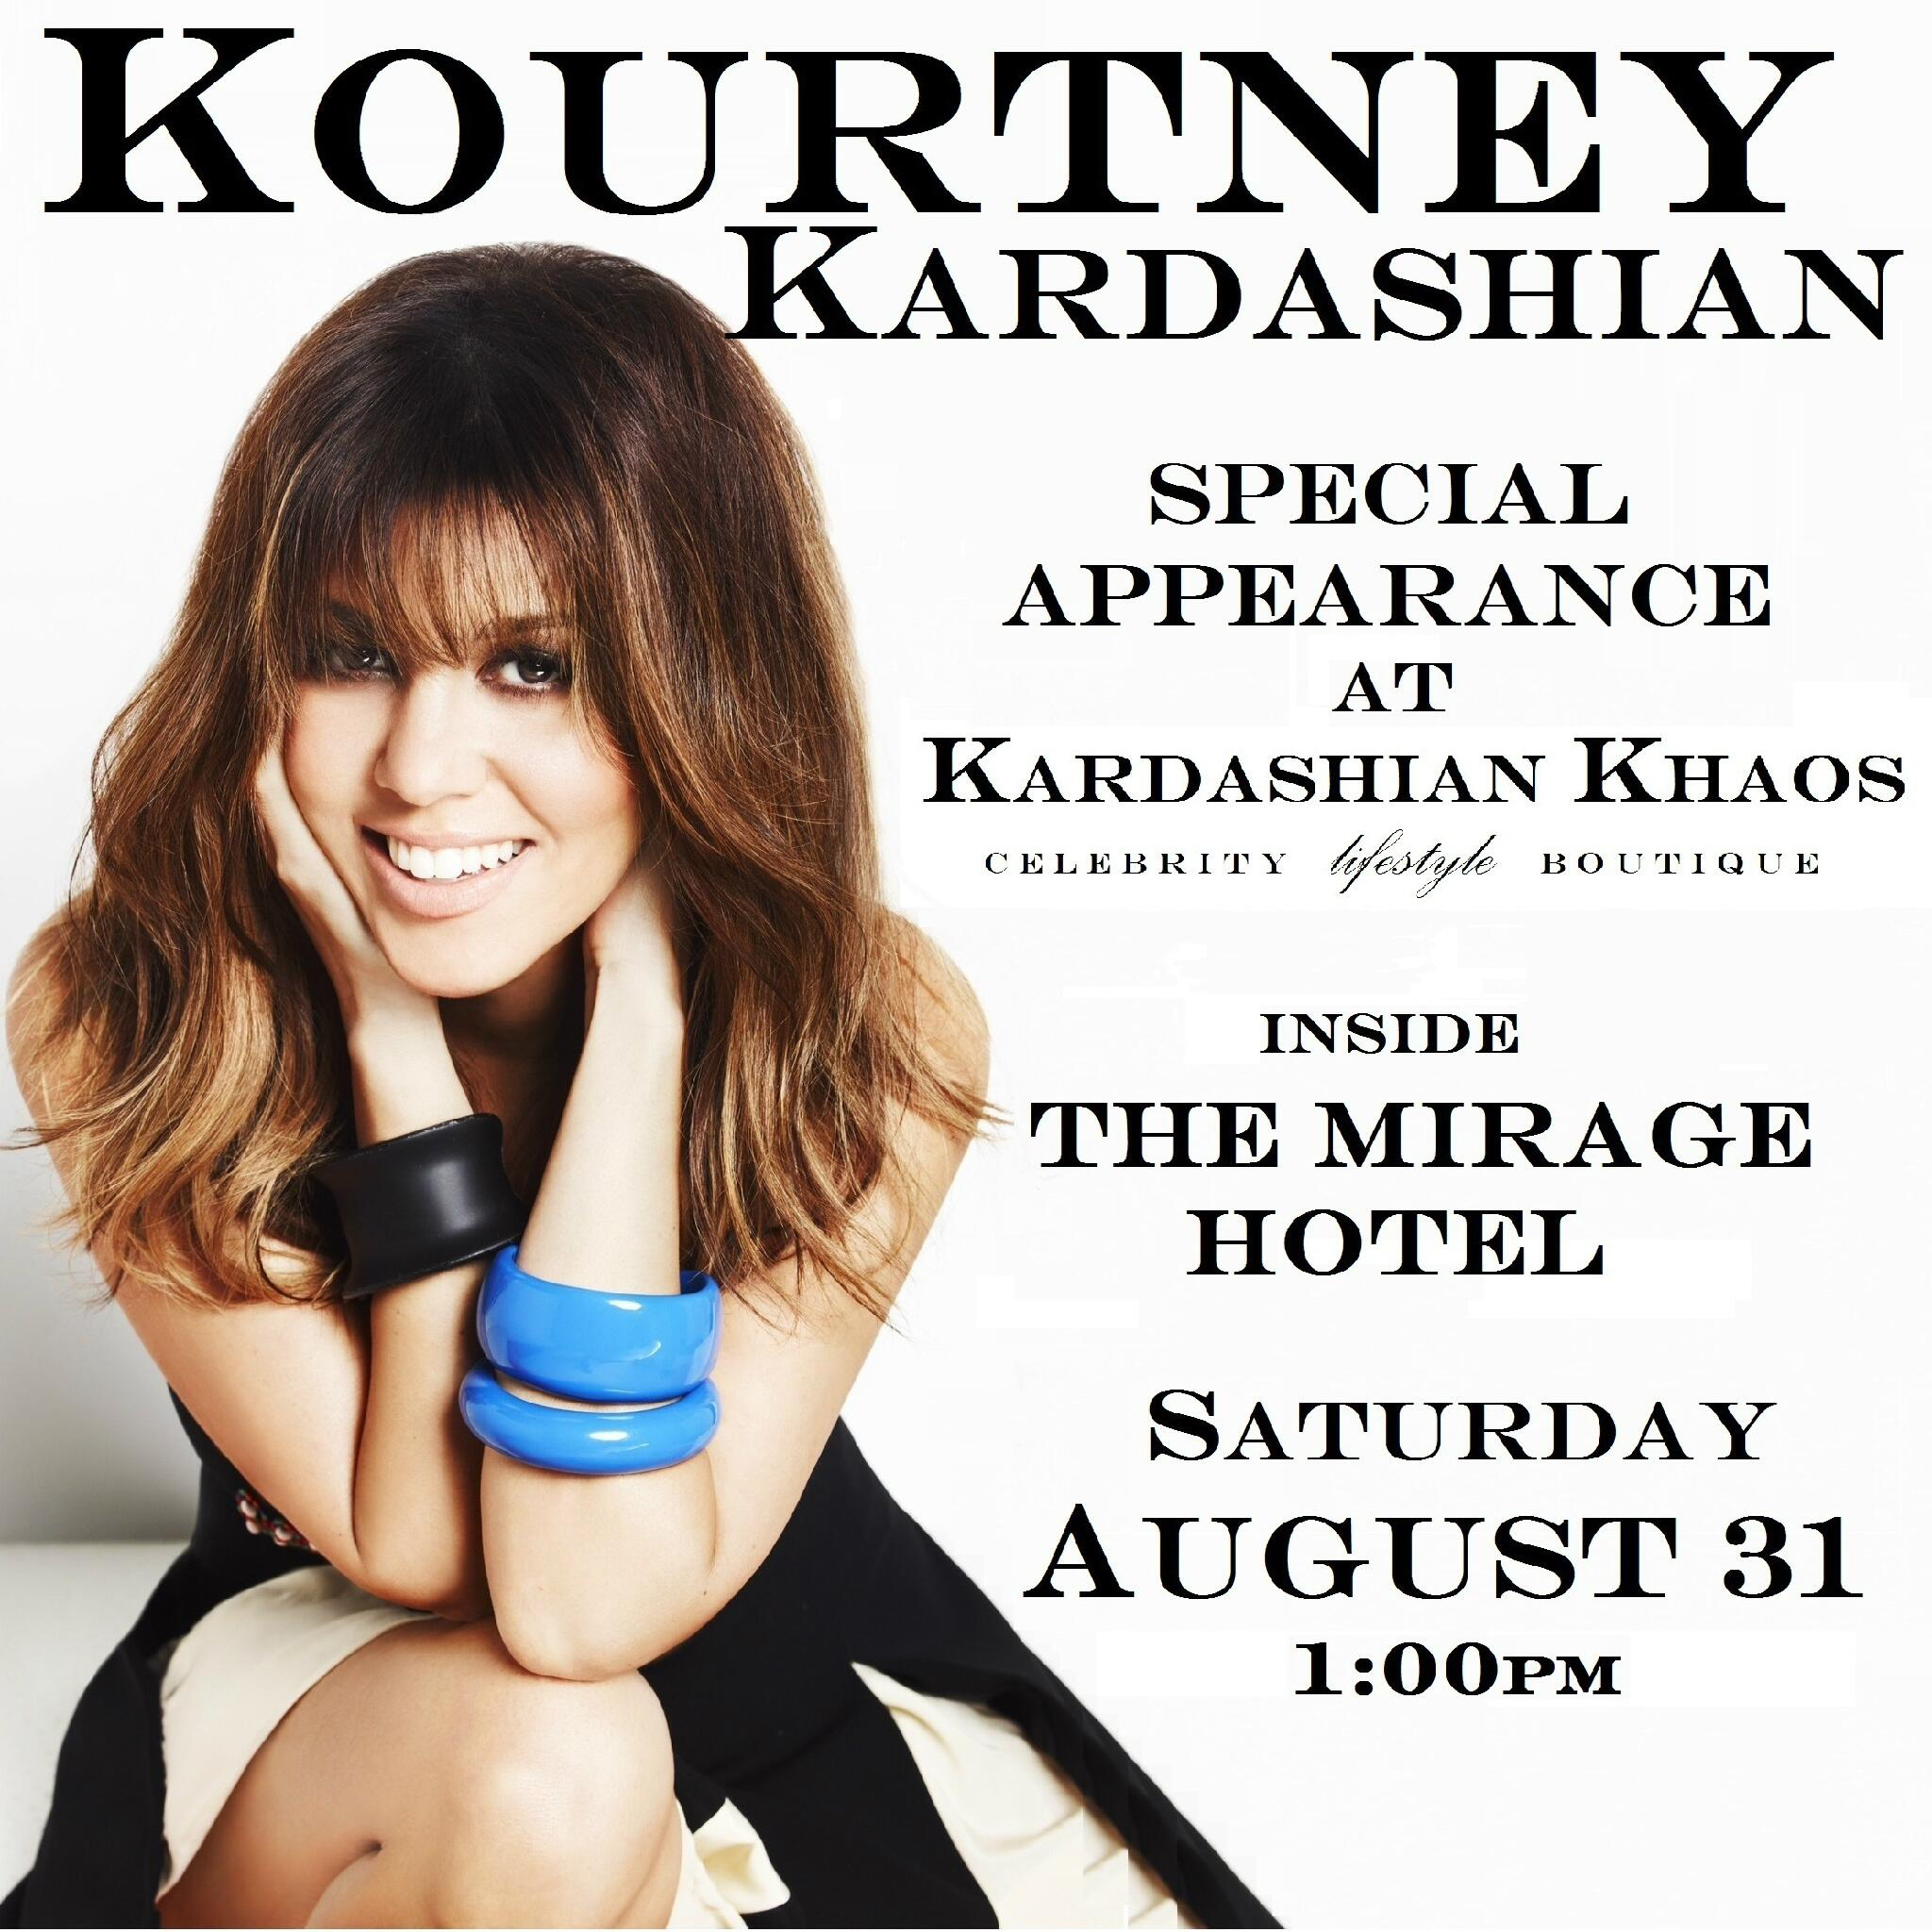 Go see my big sister Kourtney this Sat. at Kardashian Khaos in Vegas!!! http://t.co/v63QvhyXey